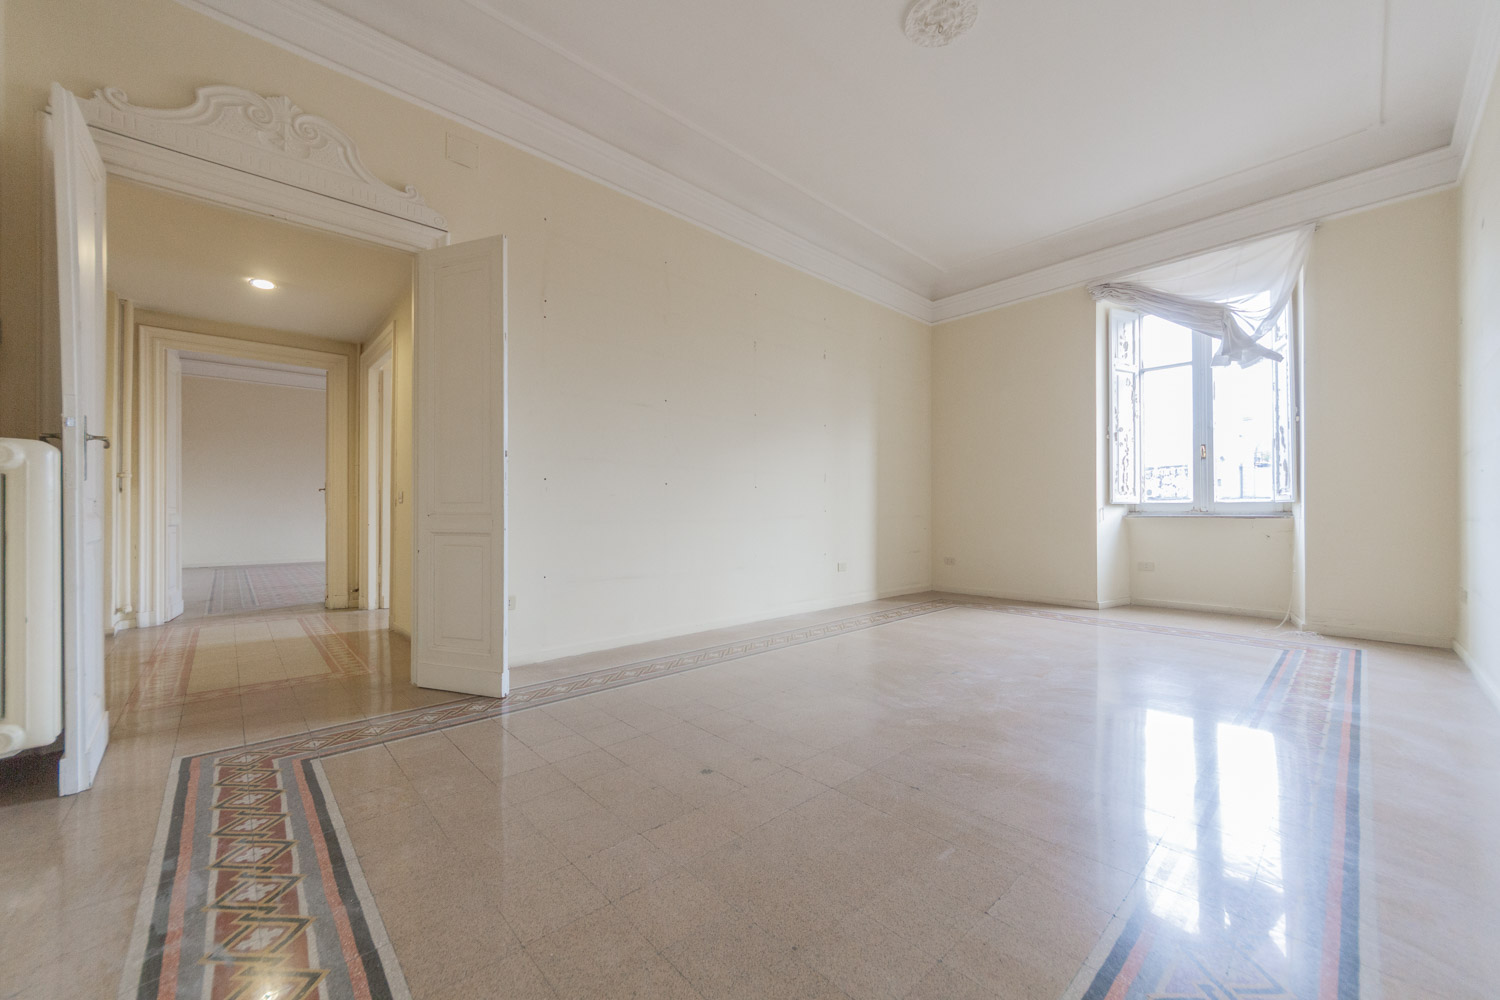 Apartment for Sale Rome Cola di Rienzo: Elegant 260 sqm Property in the Heart of Rome